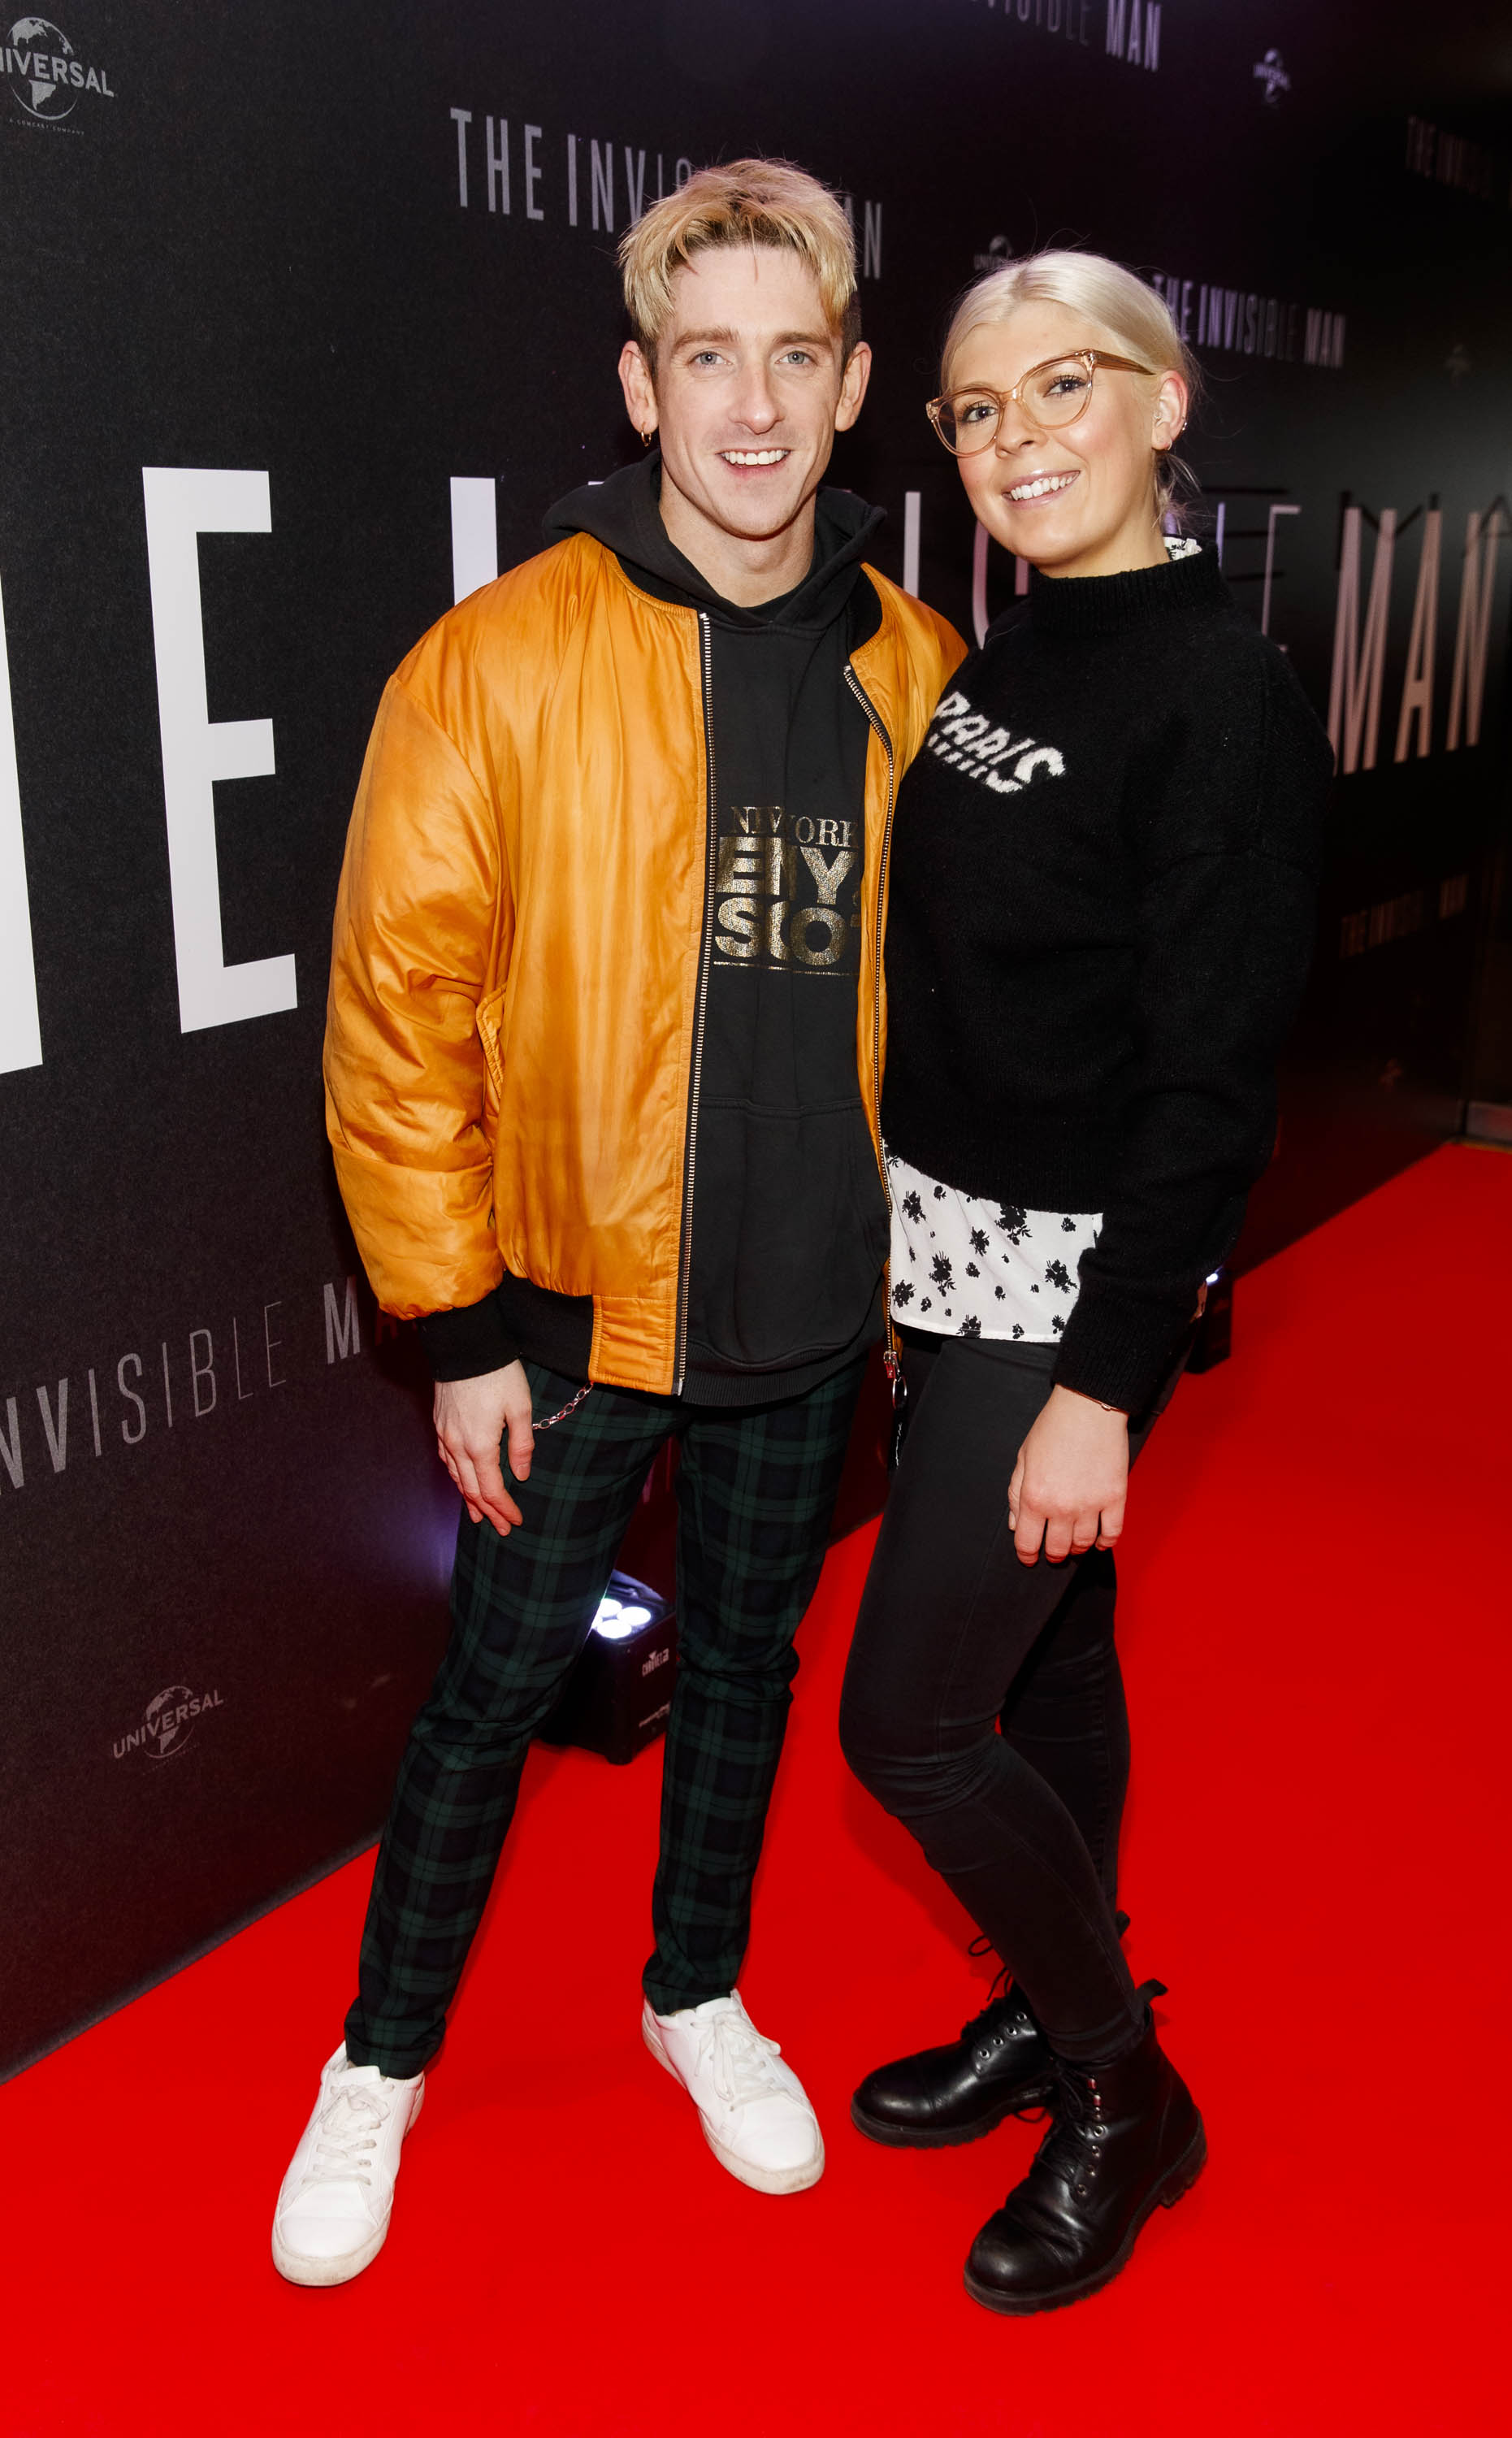 Stephen Byrne and Claudia Langford pictured at a special preview screening of The Invisible Man at Light House Cinema, Dublin. Picture: Andres Poveda.